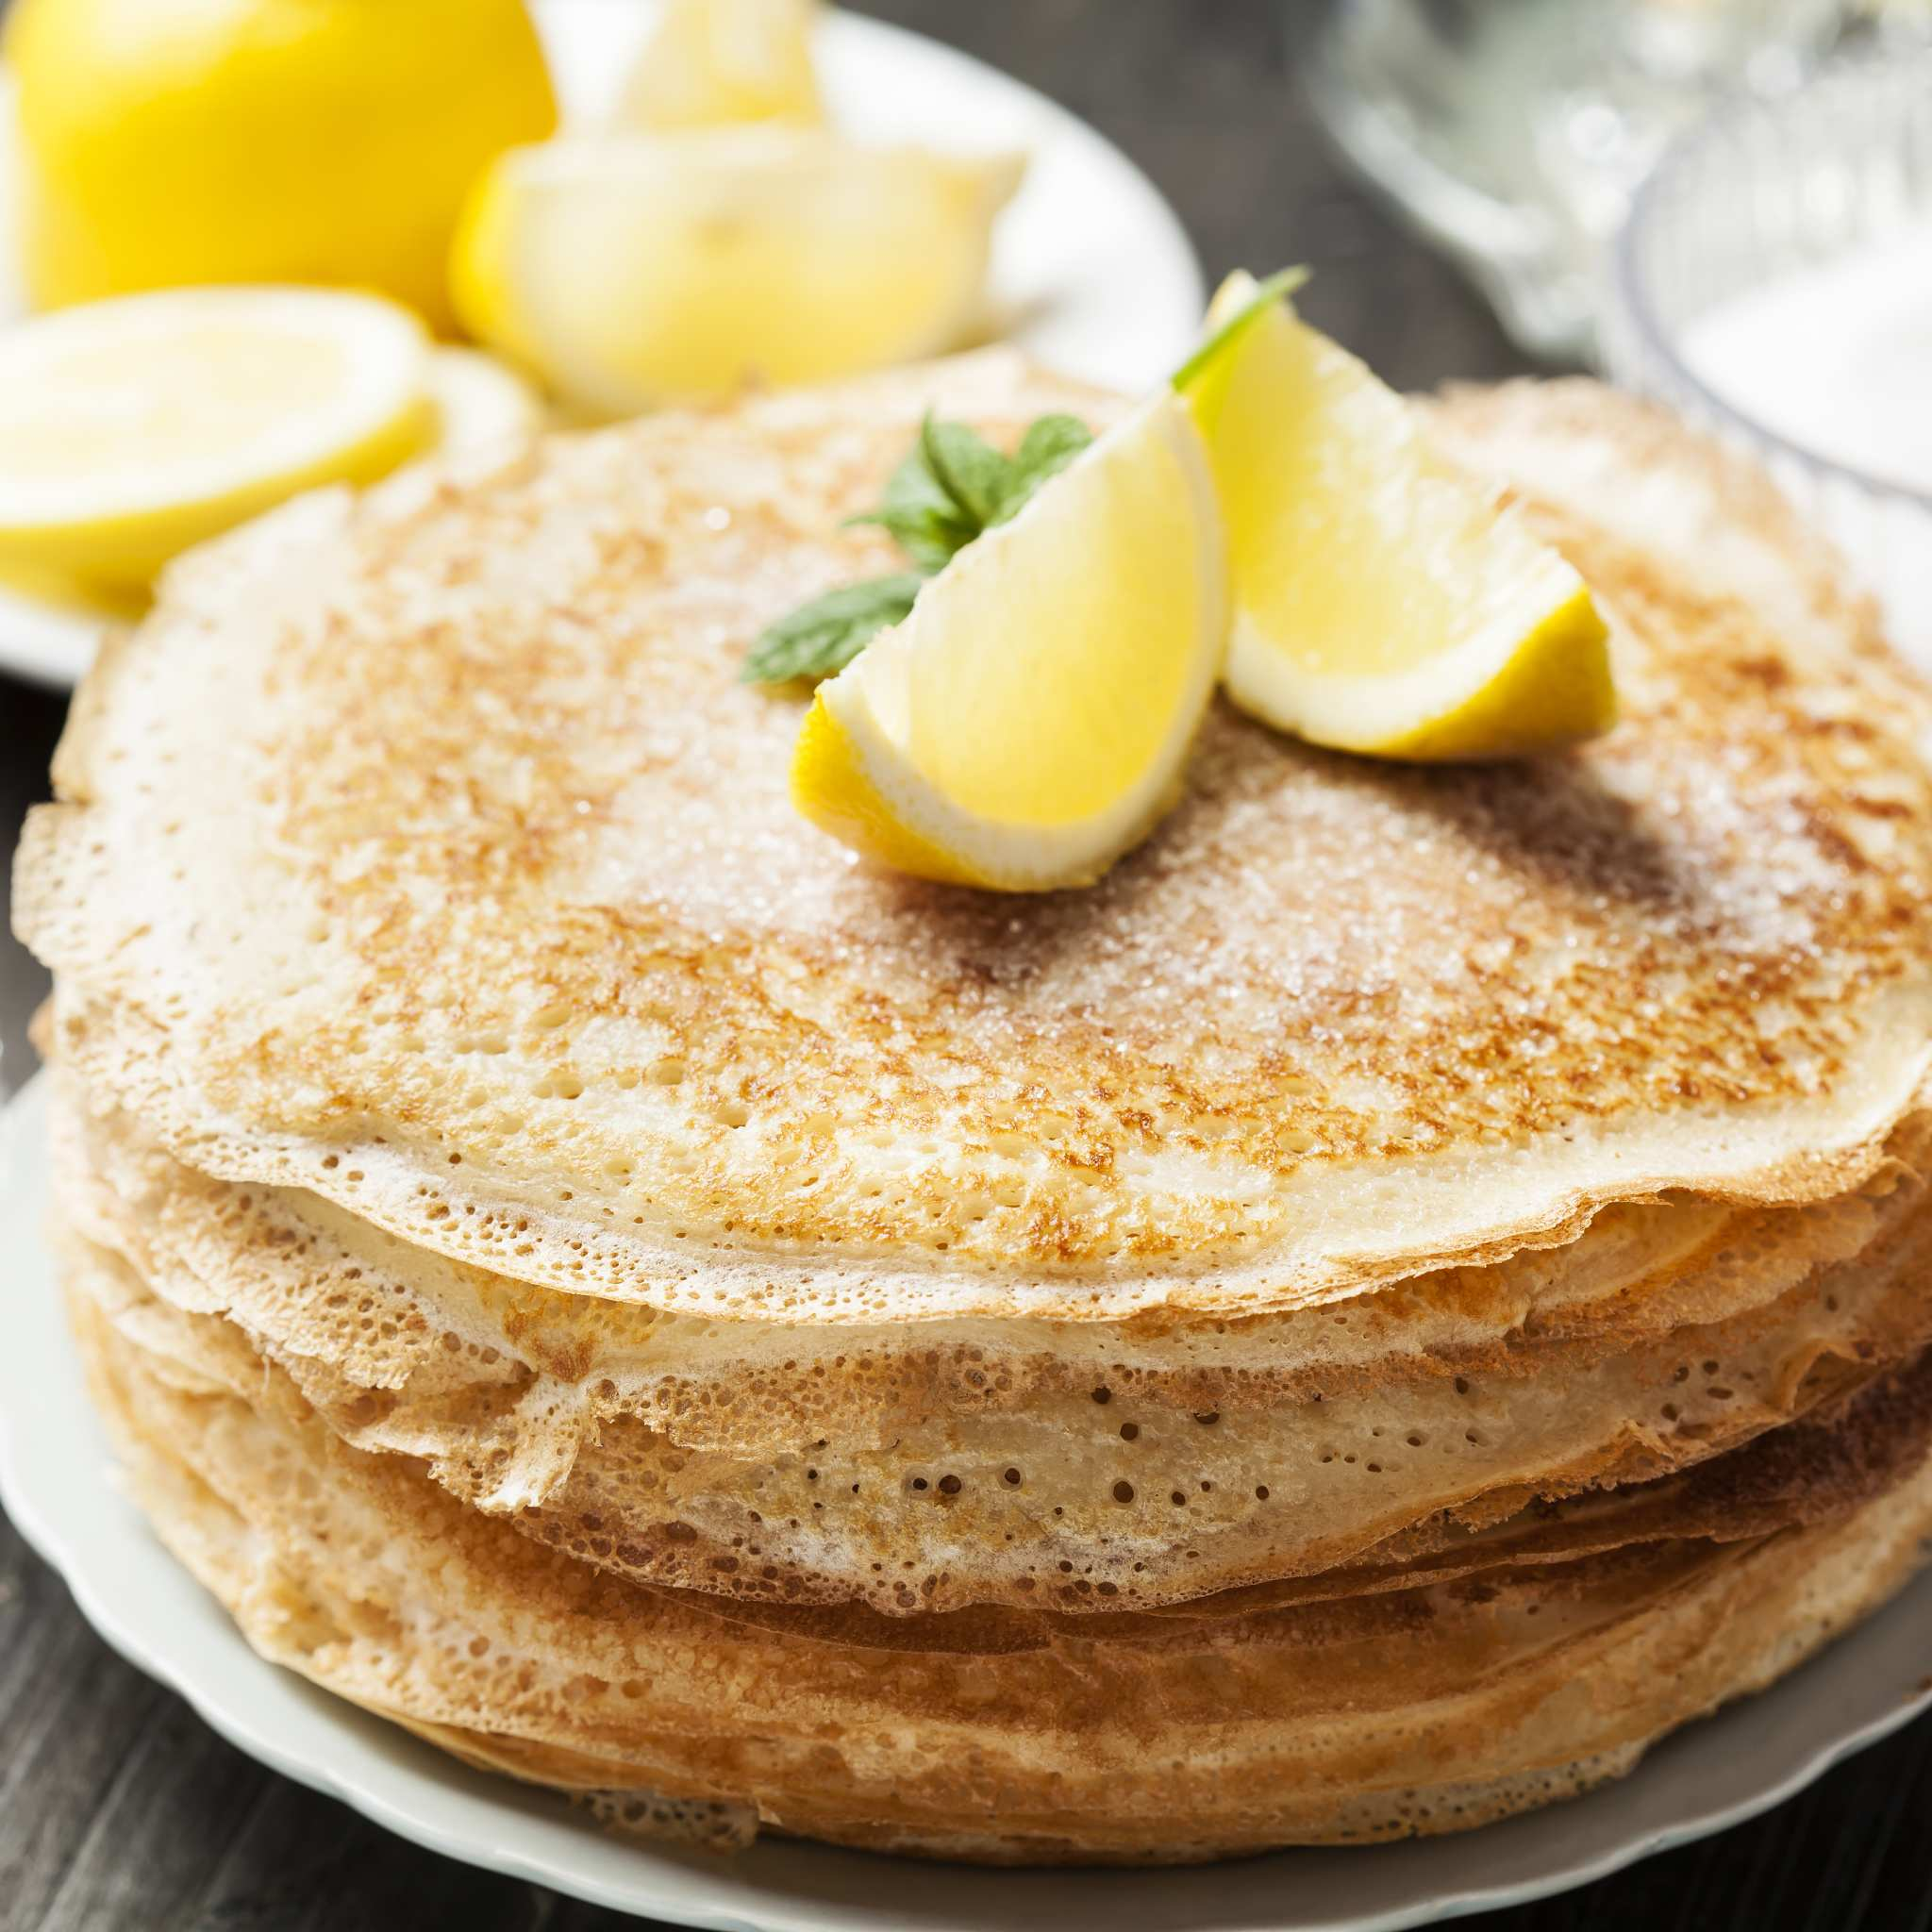 Stack of pancakes sprinkled with sugar and with wedges of lemon on top